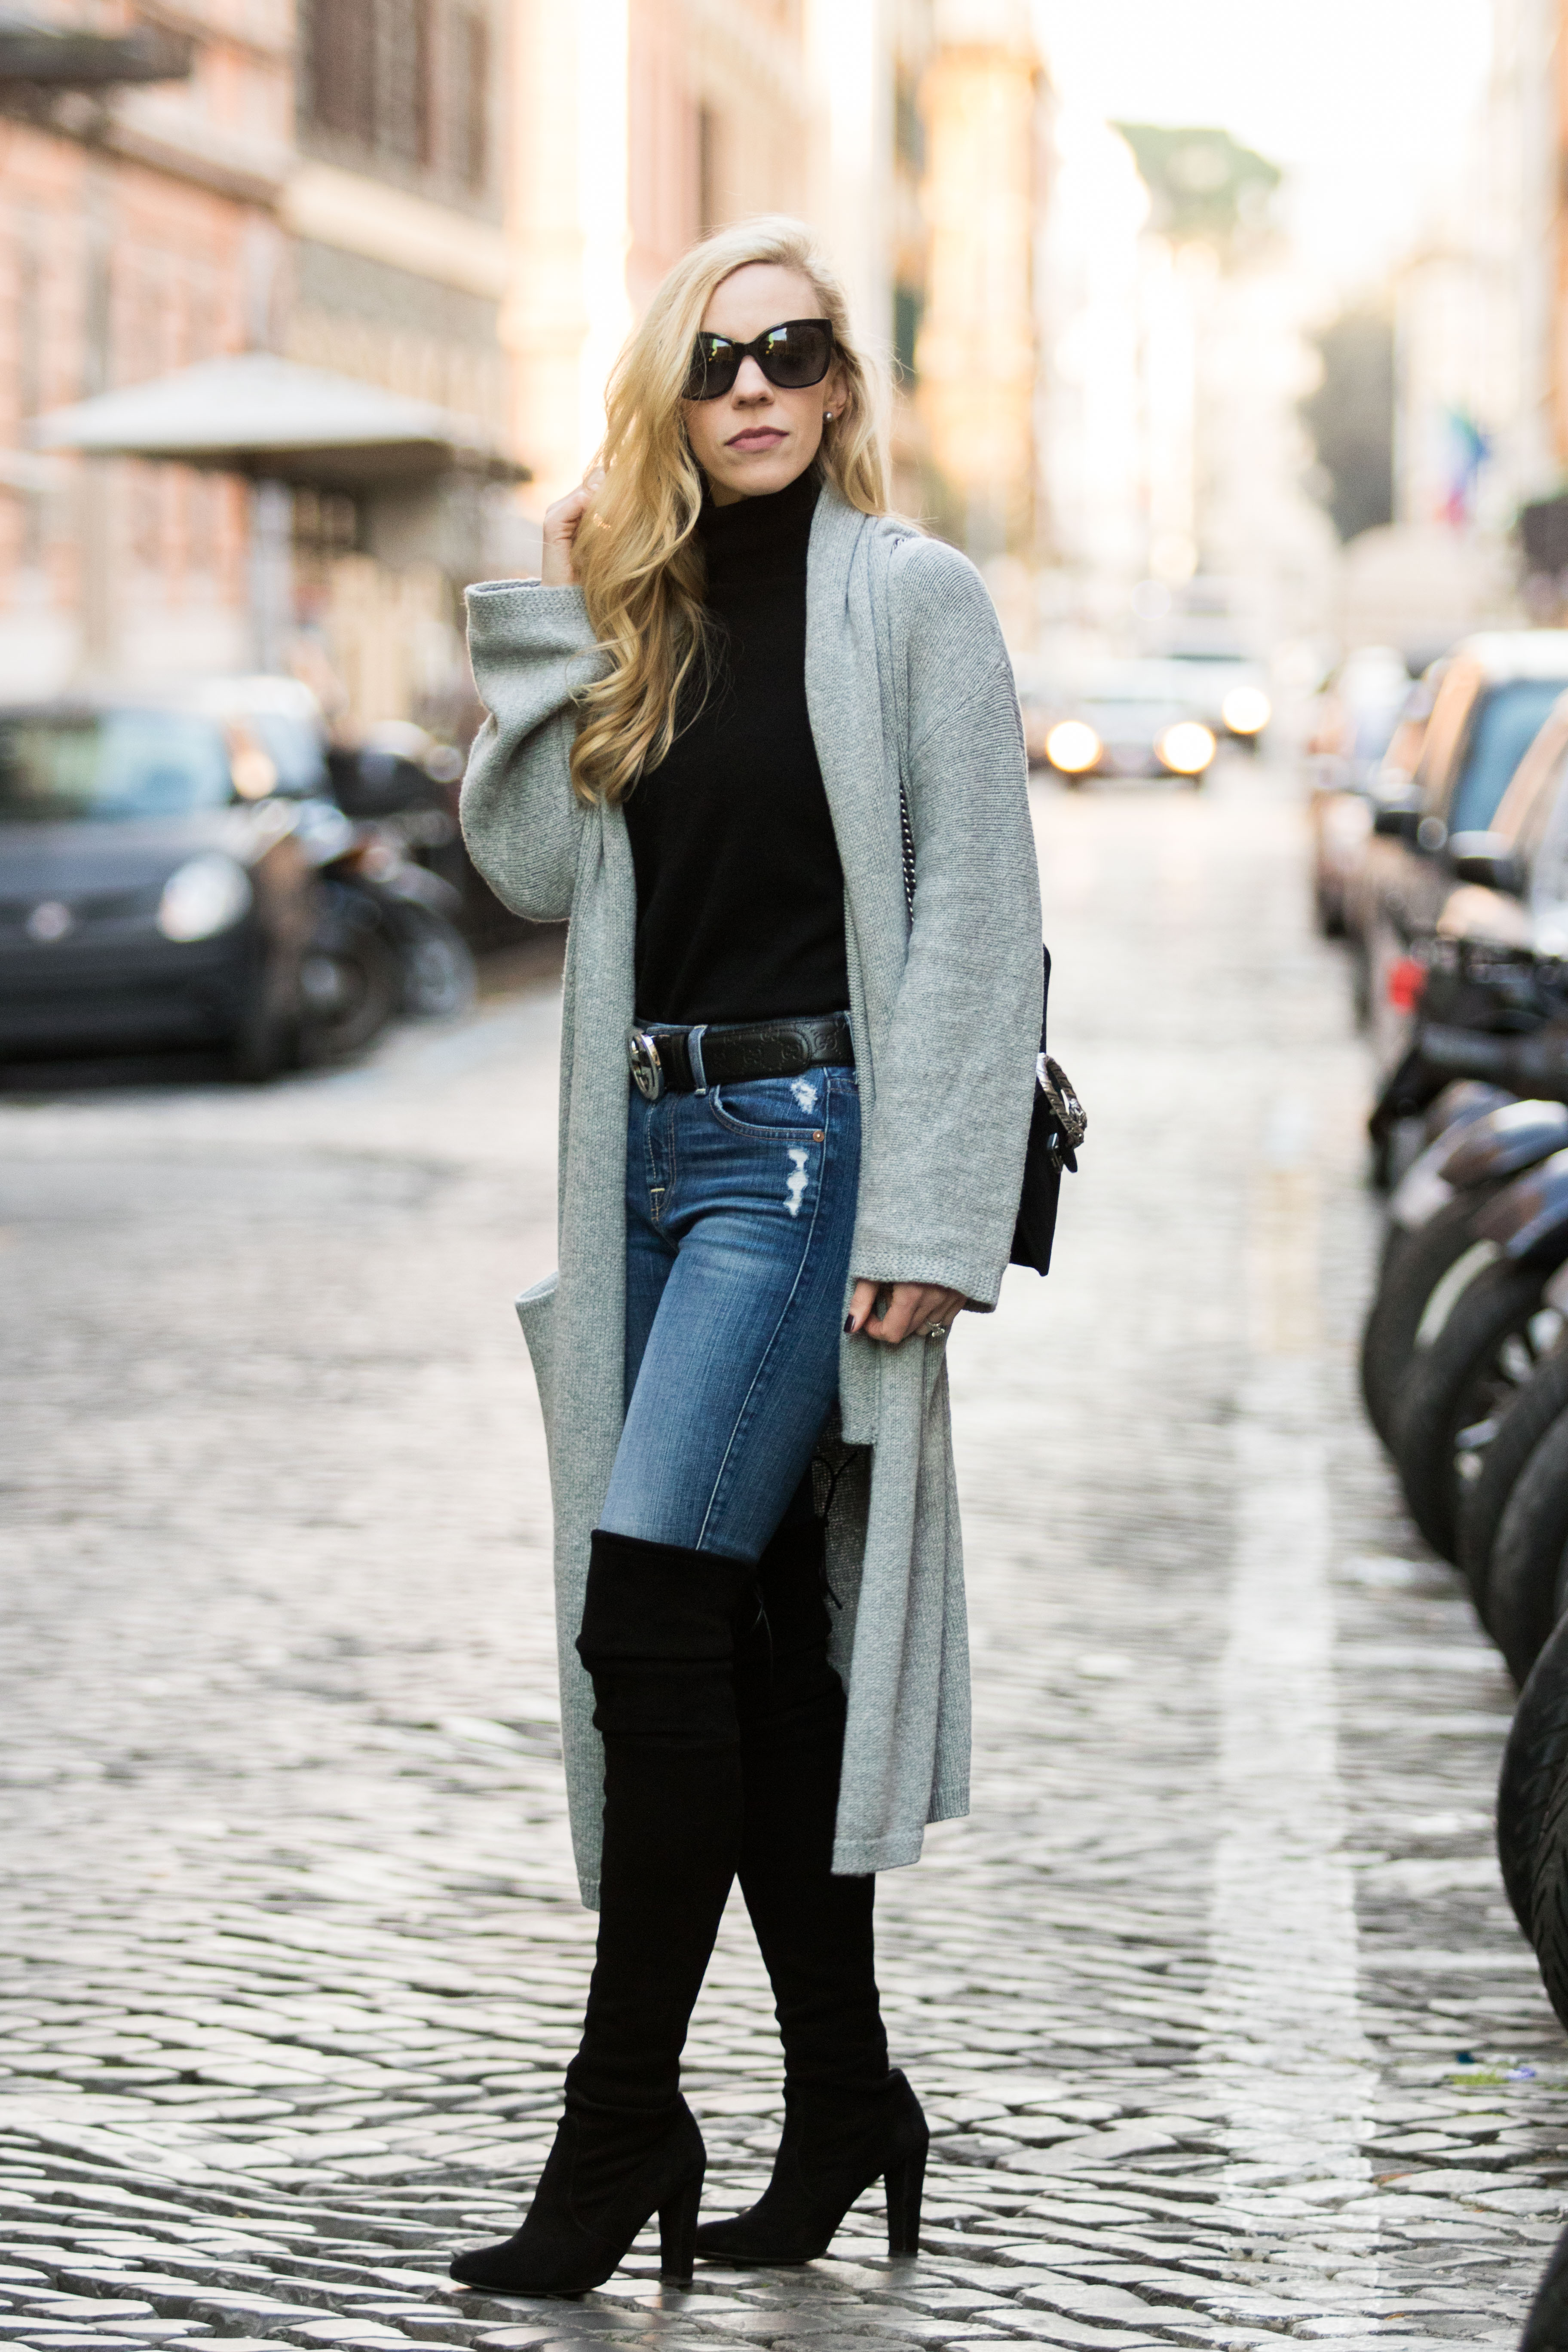 Meagan Brandon fashion blogger in long maxi cardigan with turtleneck and Stuart Weitzman over the knee boots